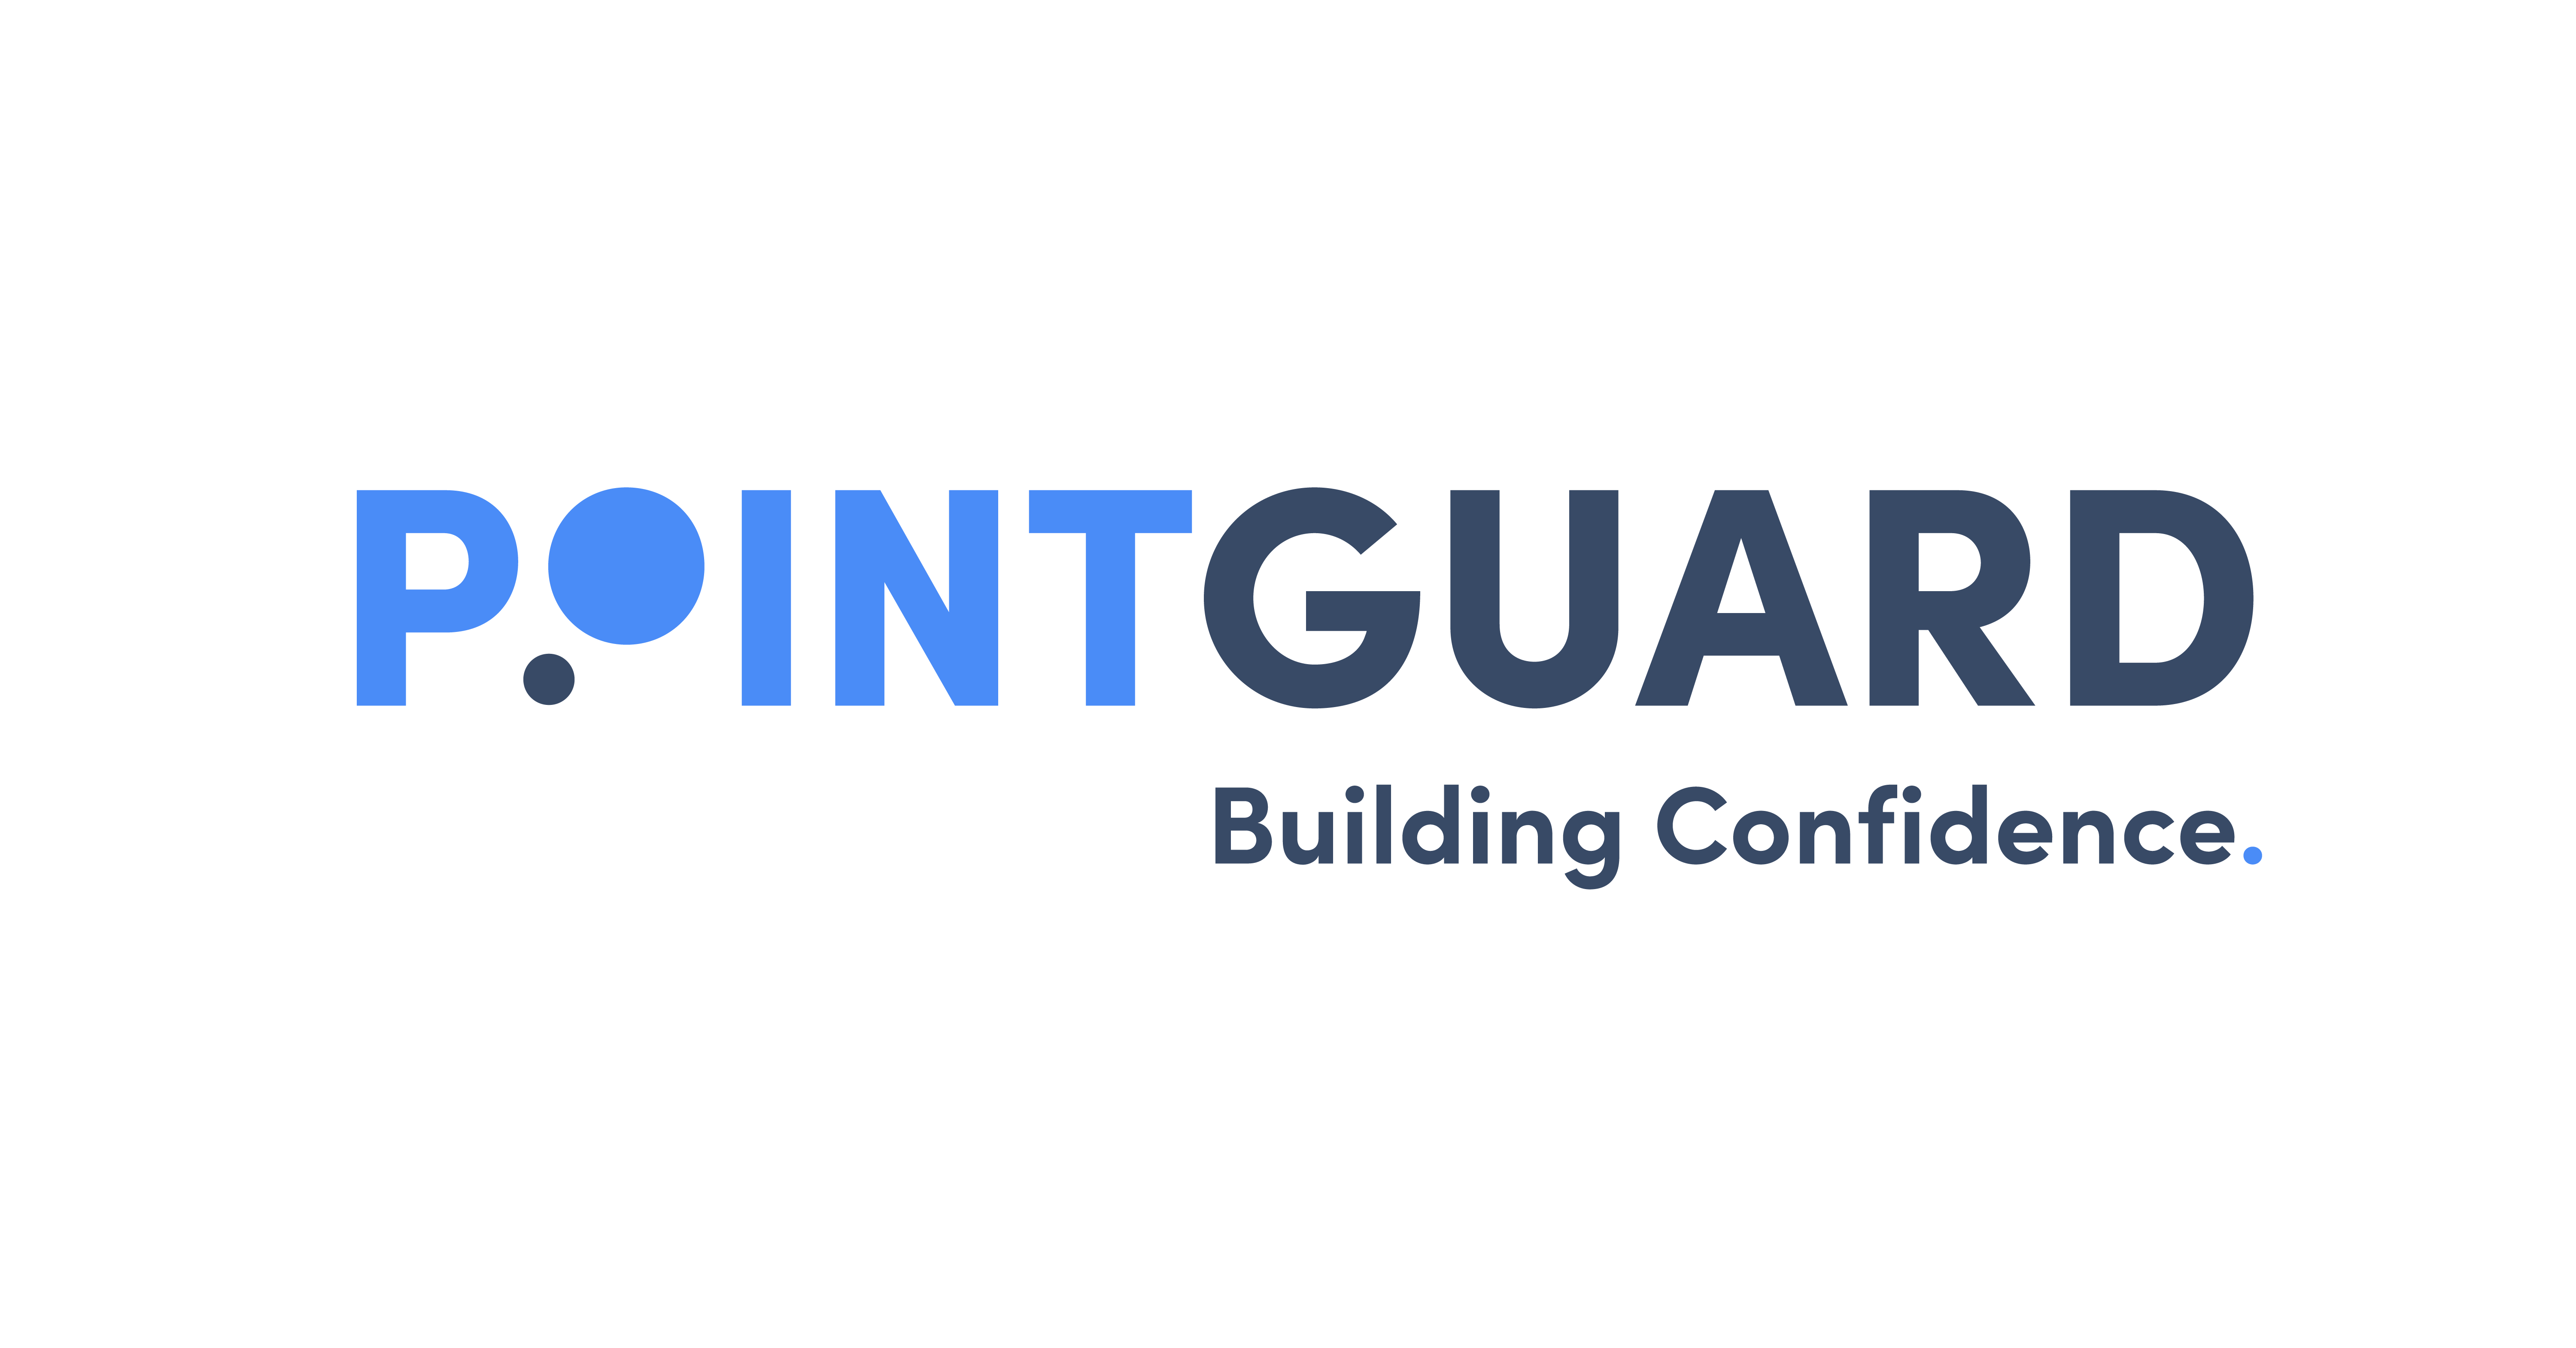 PointGuard Announces FM Software Enhancements for Buildings' Efficiency, Operation and Remote Access